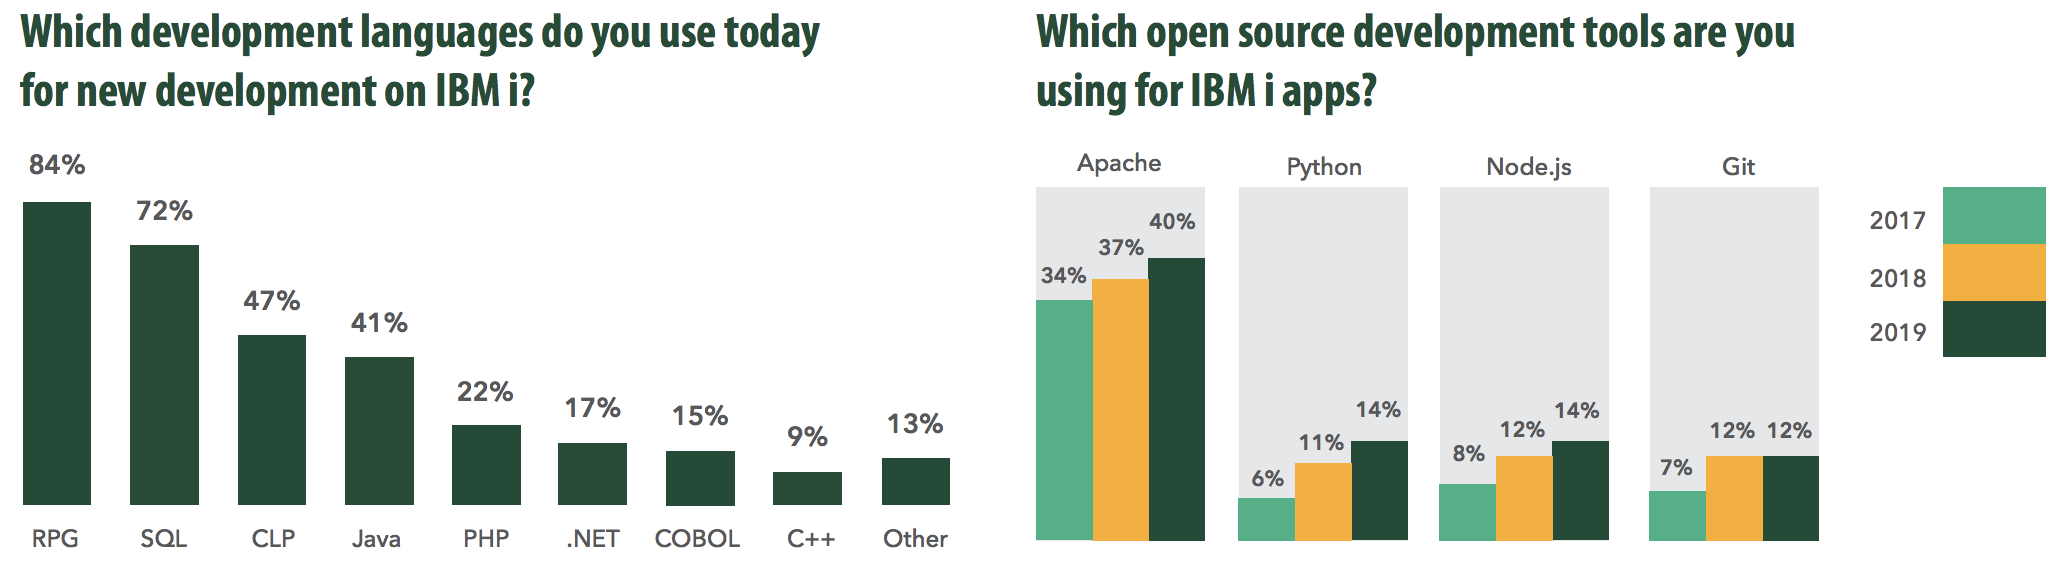 Development languages and open source development for IBM i